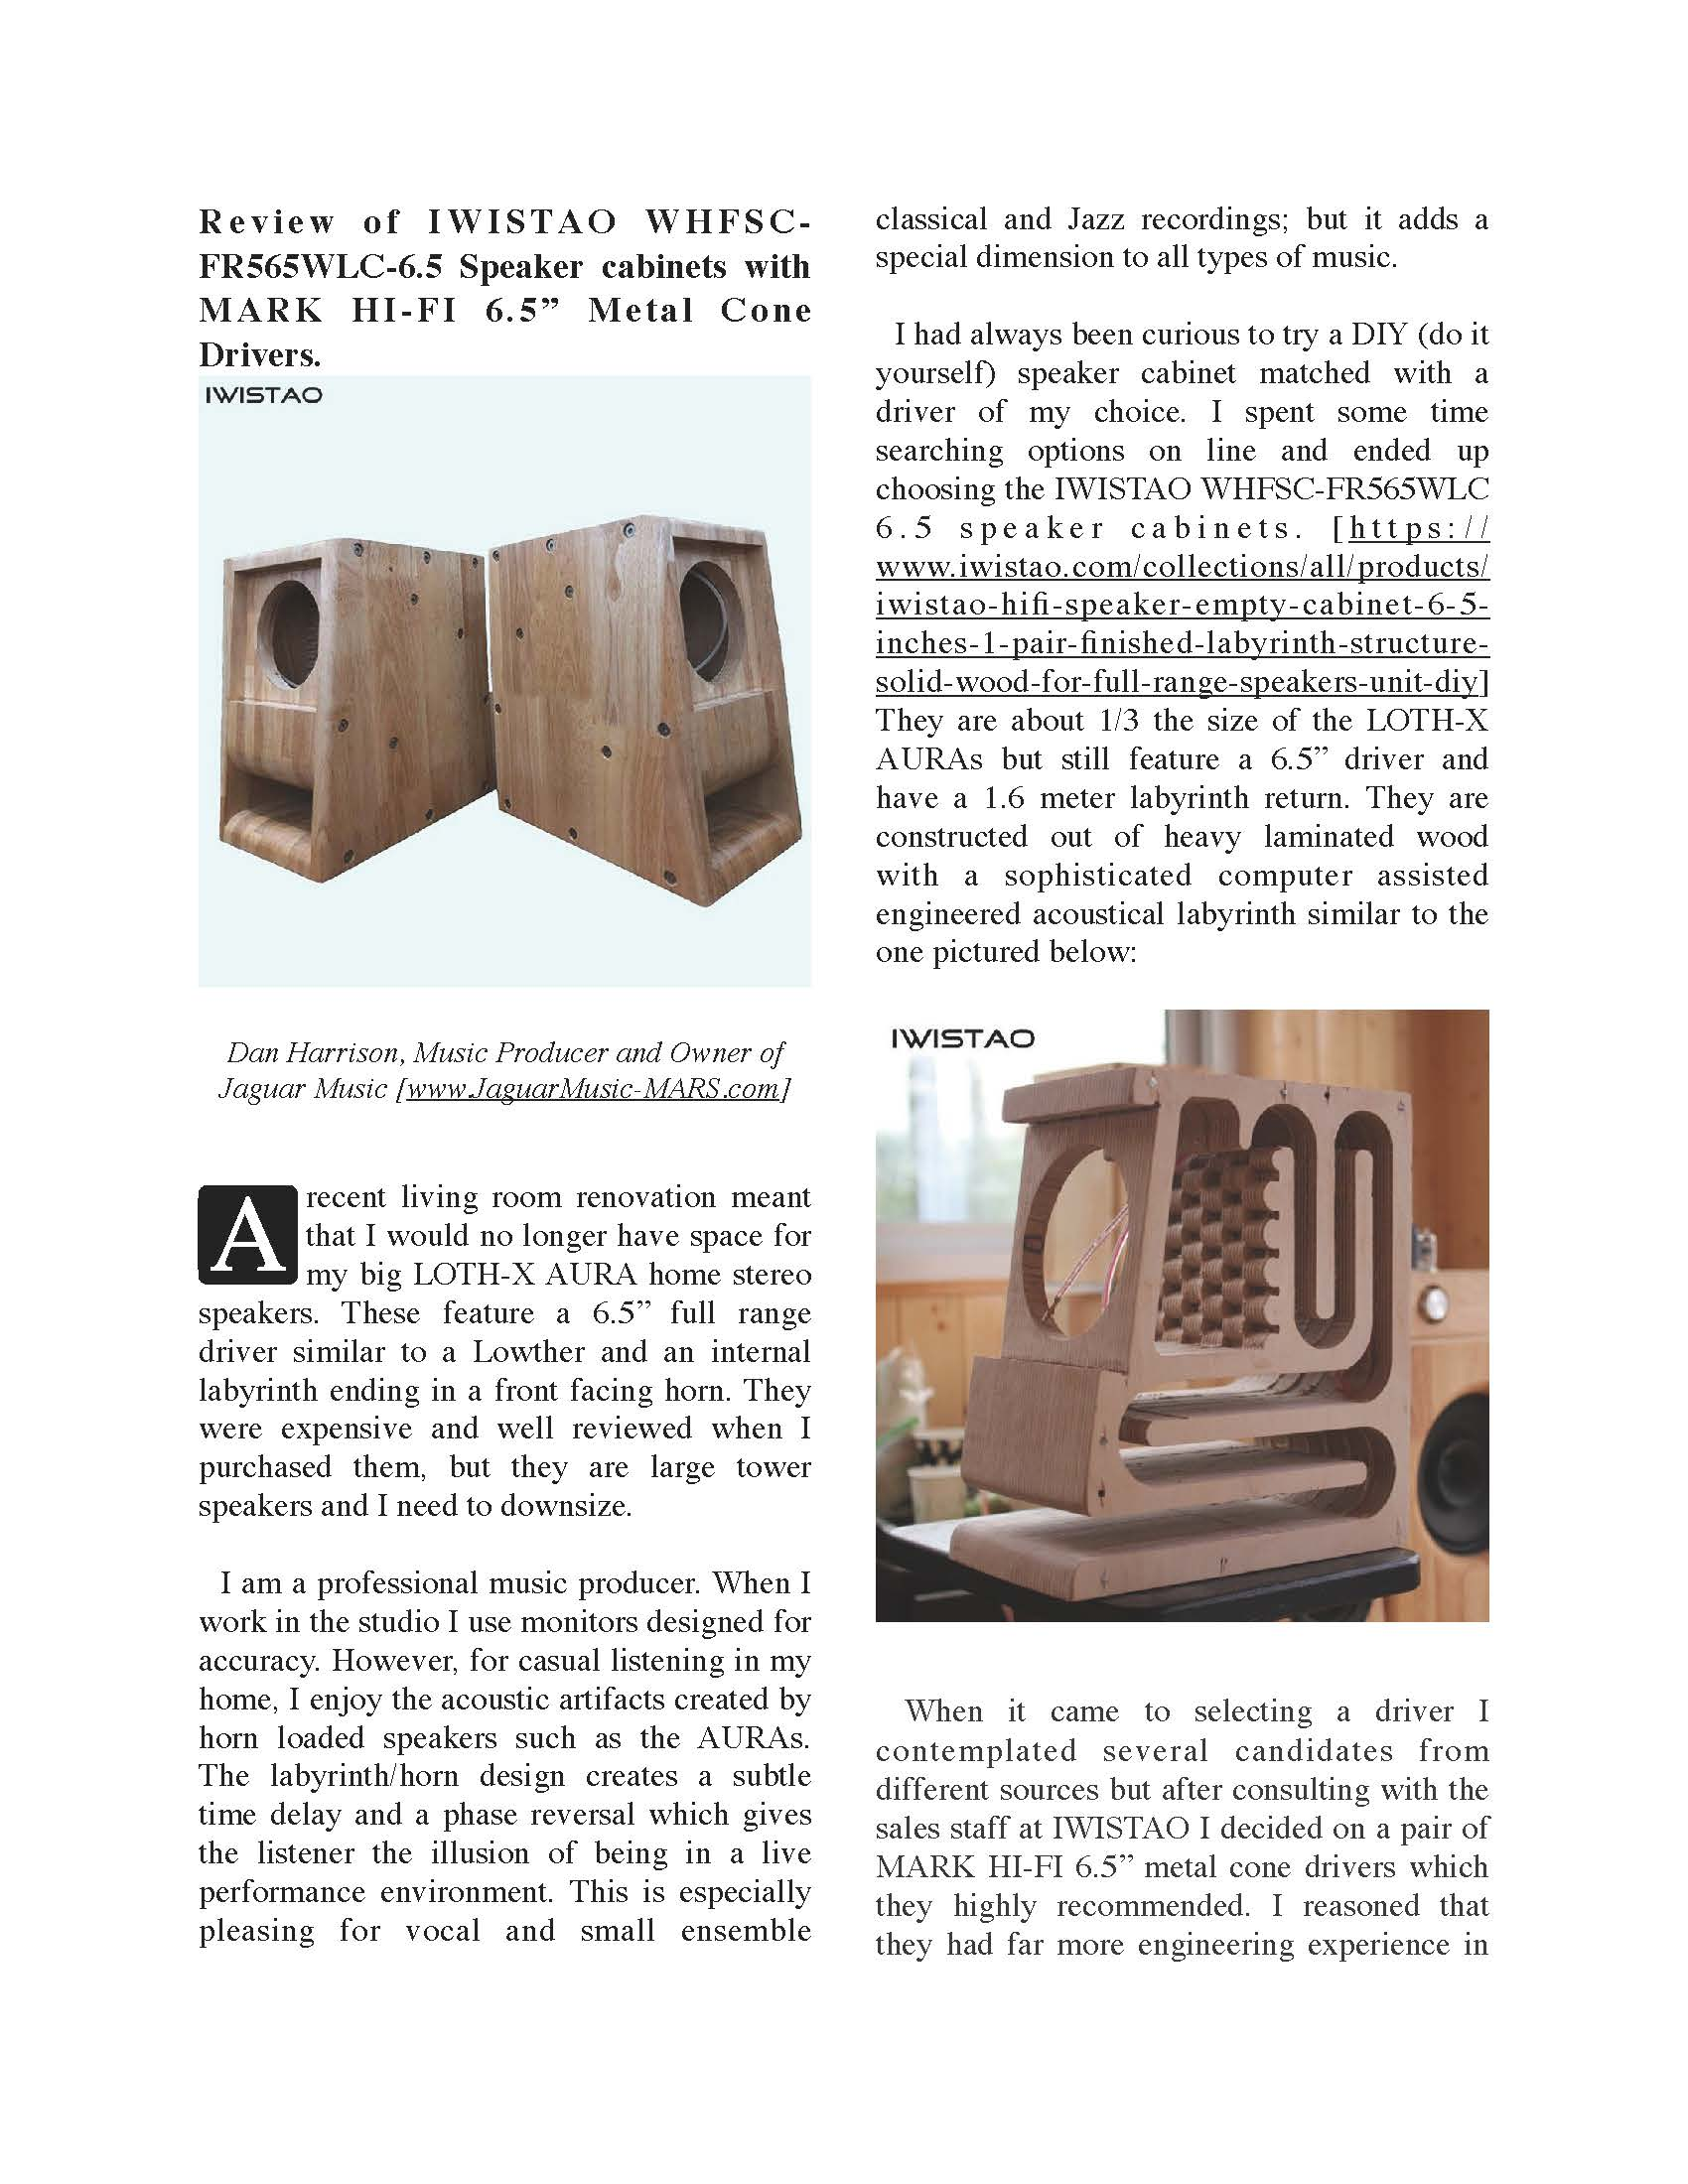 """Review of IWISTAO WHFSC- FR565WLC-6.5 Speaker cabinets with MARK HI-FI 6.5"""" Metal Cone  Drivers"""